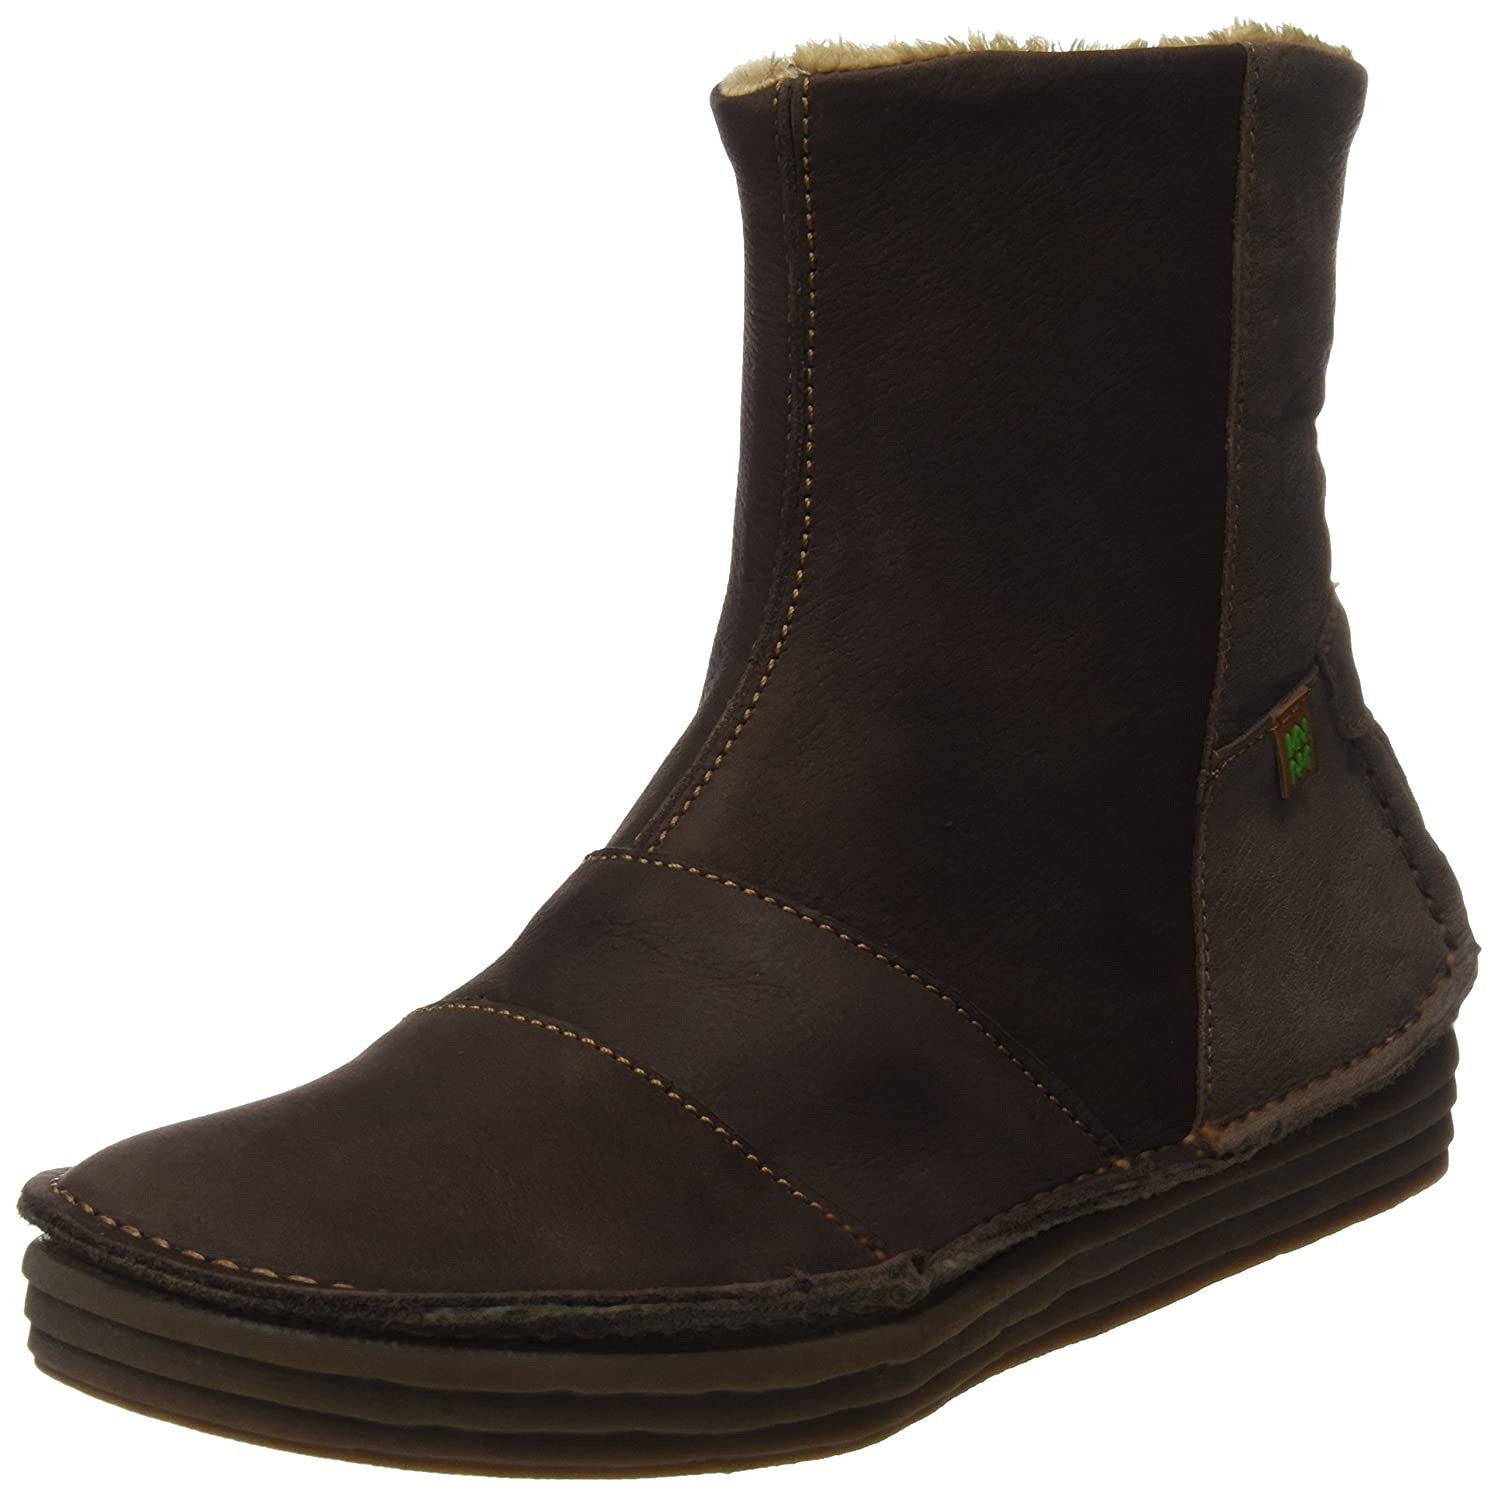 N919 Pleasant Angkor, Bottes Et Bottines Indiennes Femme, Marron (Brown), 39 EUEl Naturalista